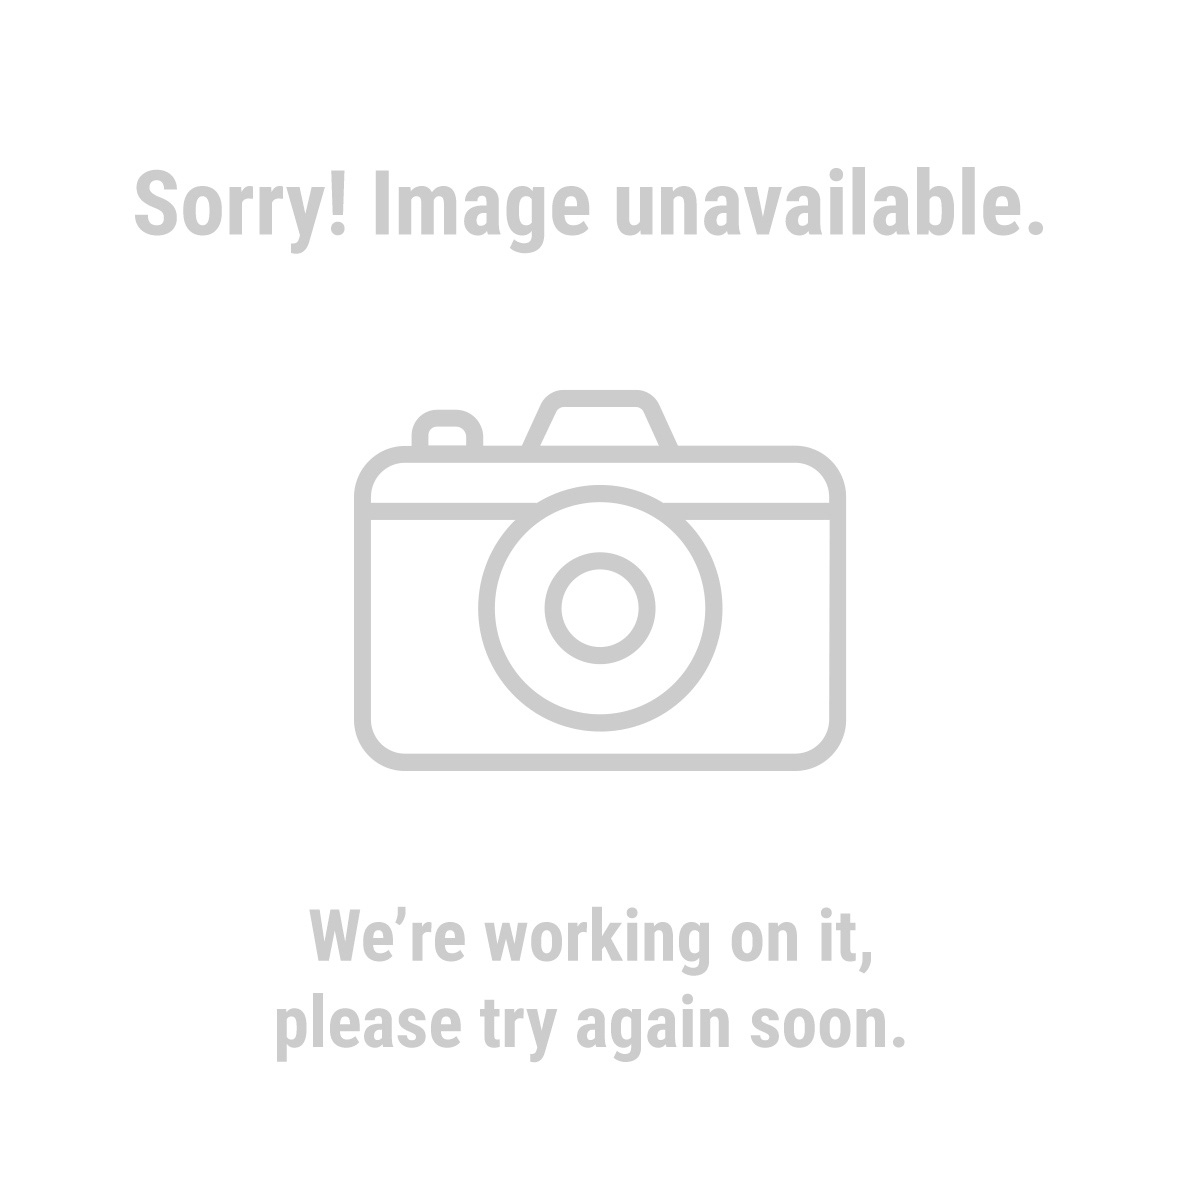 Warrior® 60230 3 Piece 7 in. 36 Grit Resin Fiber Sanding Discs